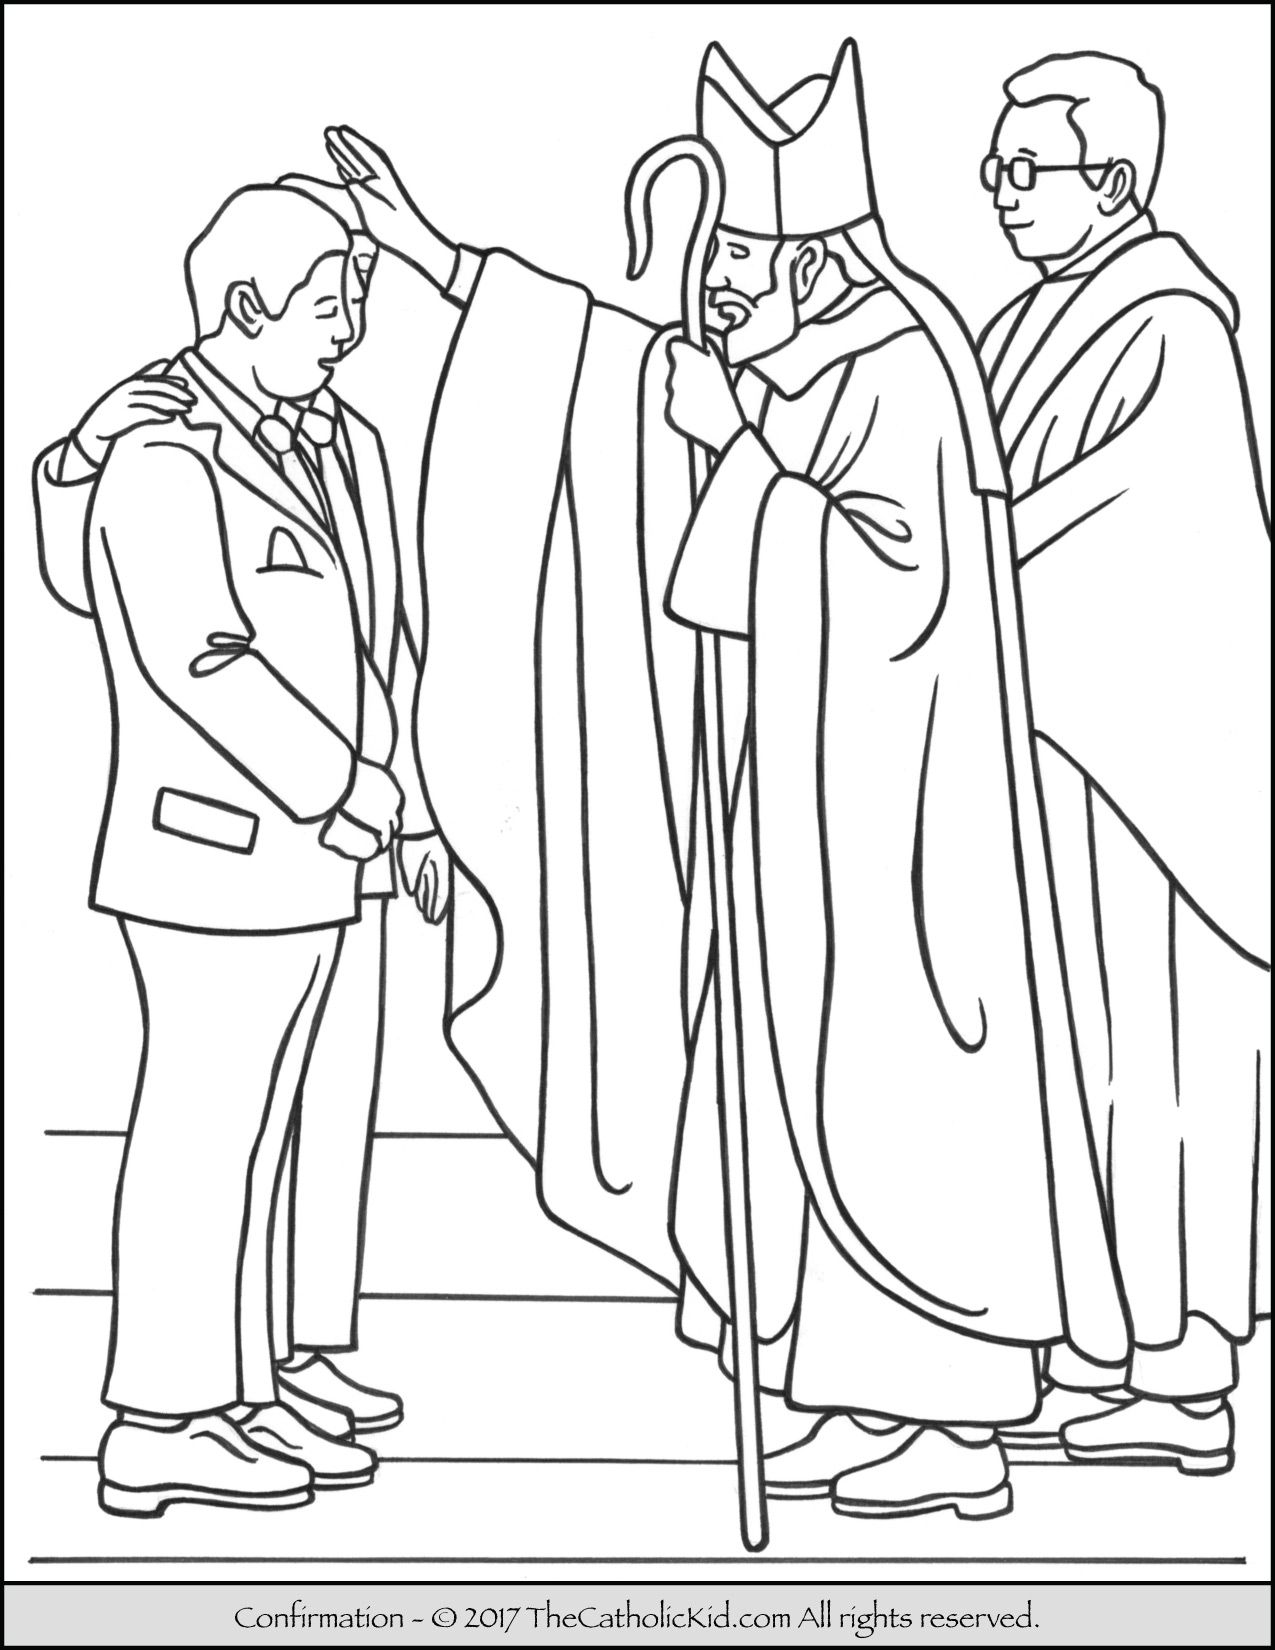 Sacrament Of Confirmation Coloring Page